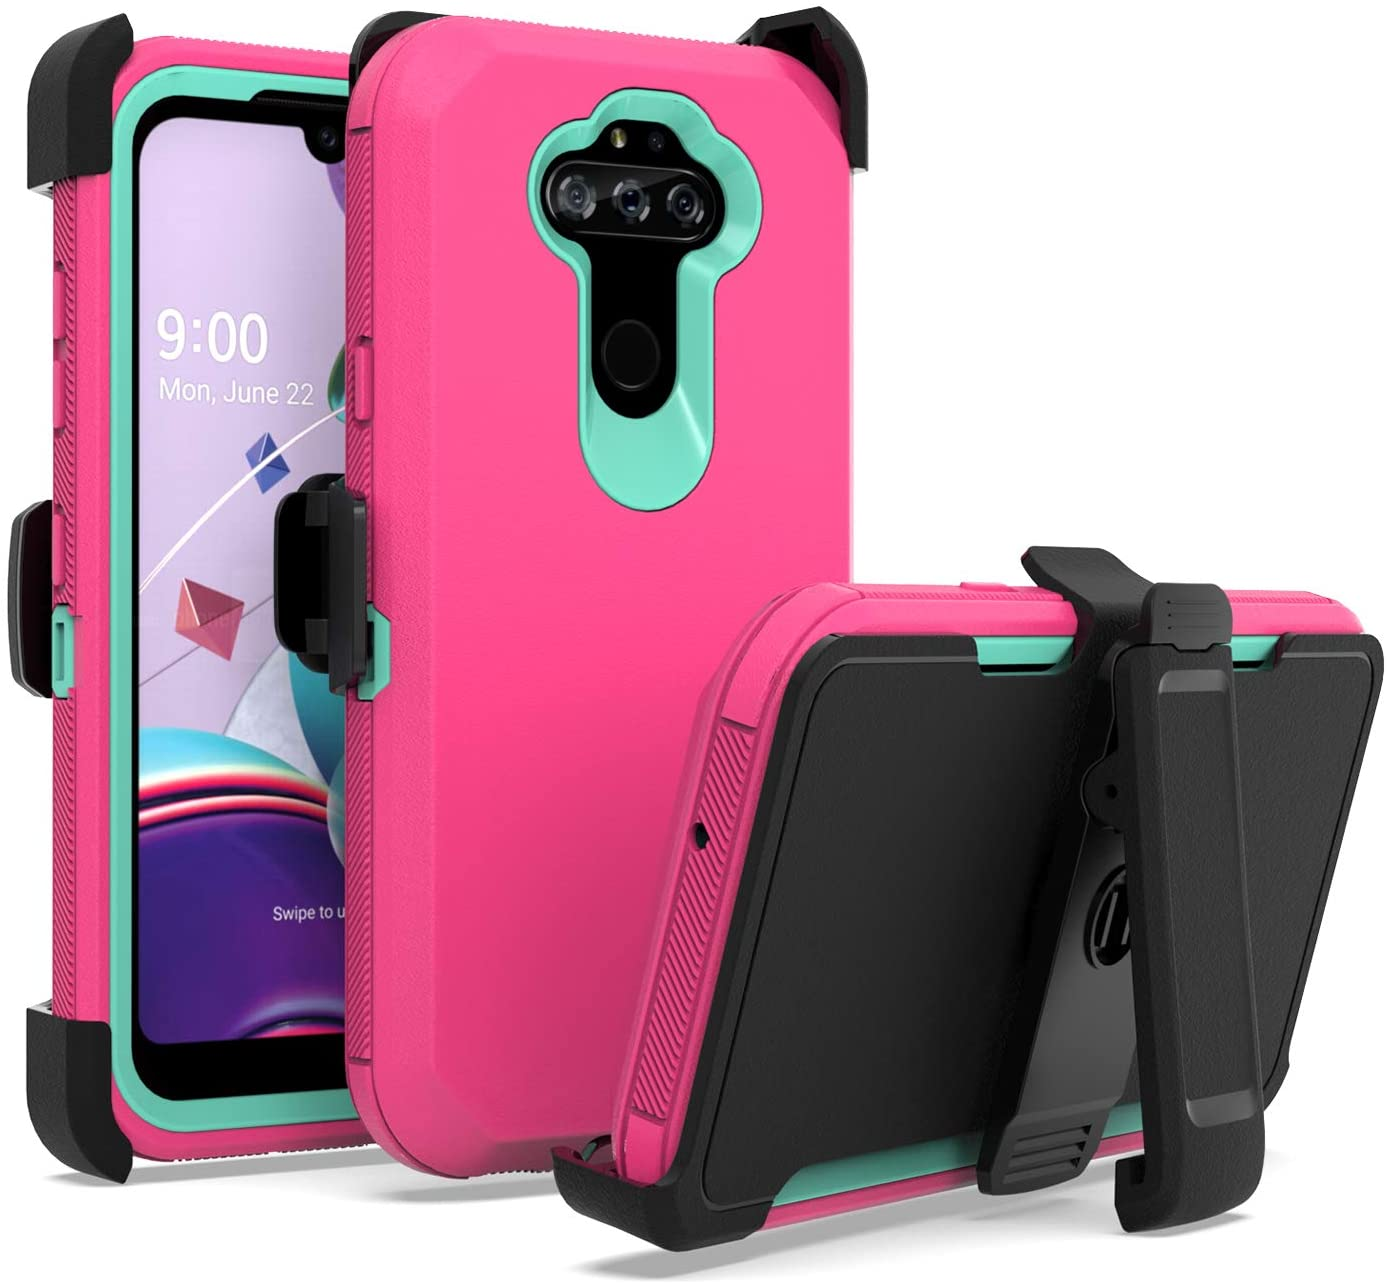 EnCASEs Belt Clip Holster Cell Phone Case for LG Phoenix 5 / Aristo 5 / K31 / Fortune 3 / Tribute Monarch / K8x / Risio 4, Heavy Duty Protection Case with Kickstand, Hot Pink/Teal